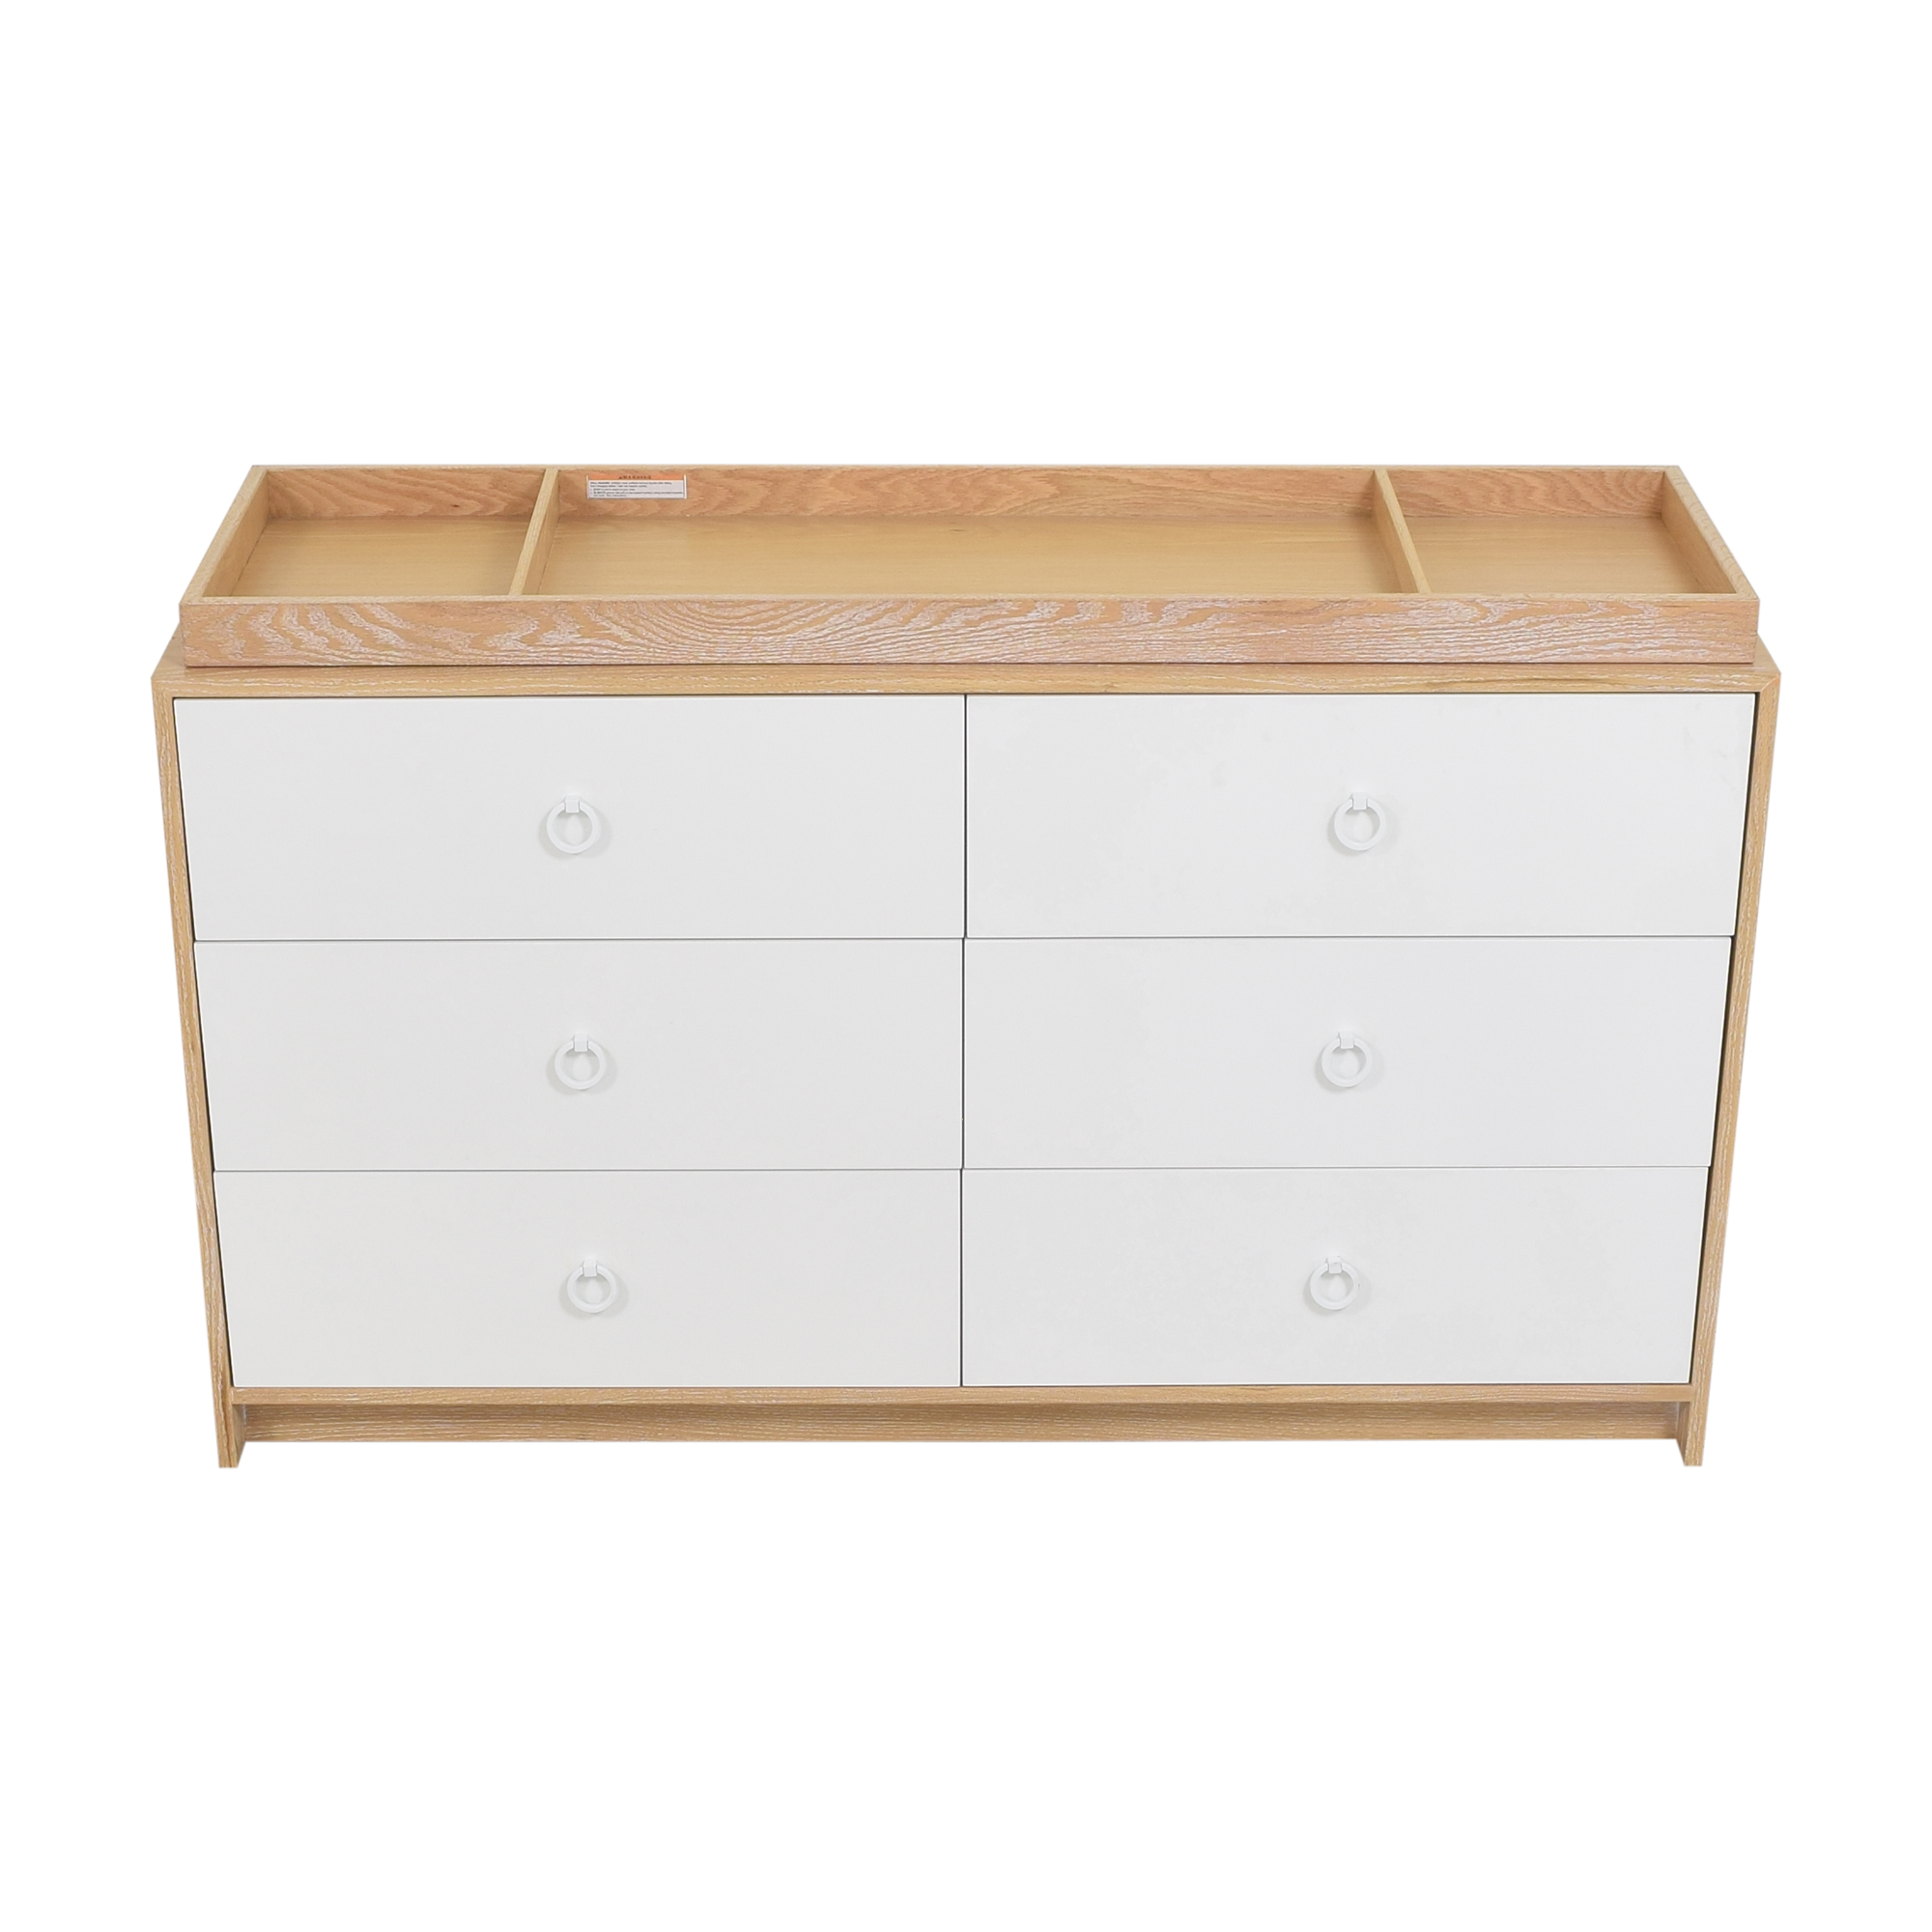 shop ducduc Cabana Doublewide Six Drawer Dresser ducduc Storage